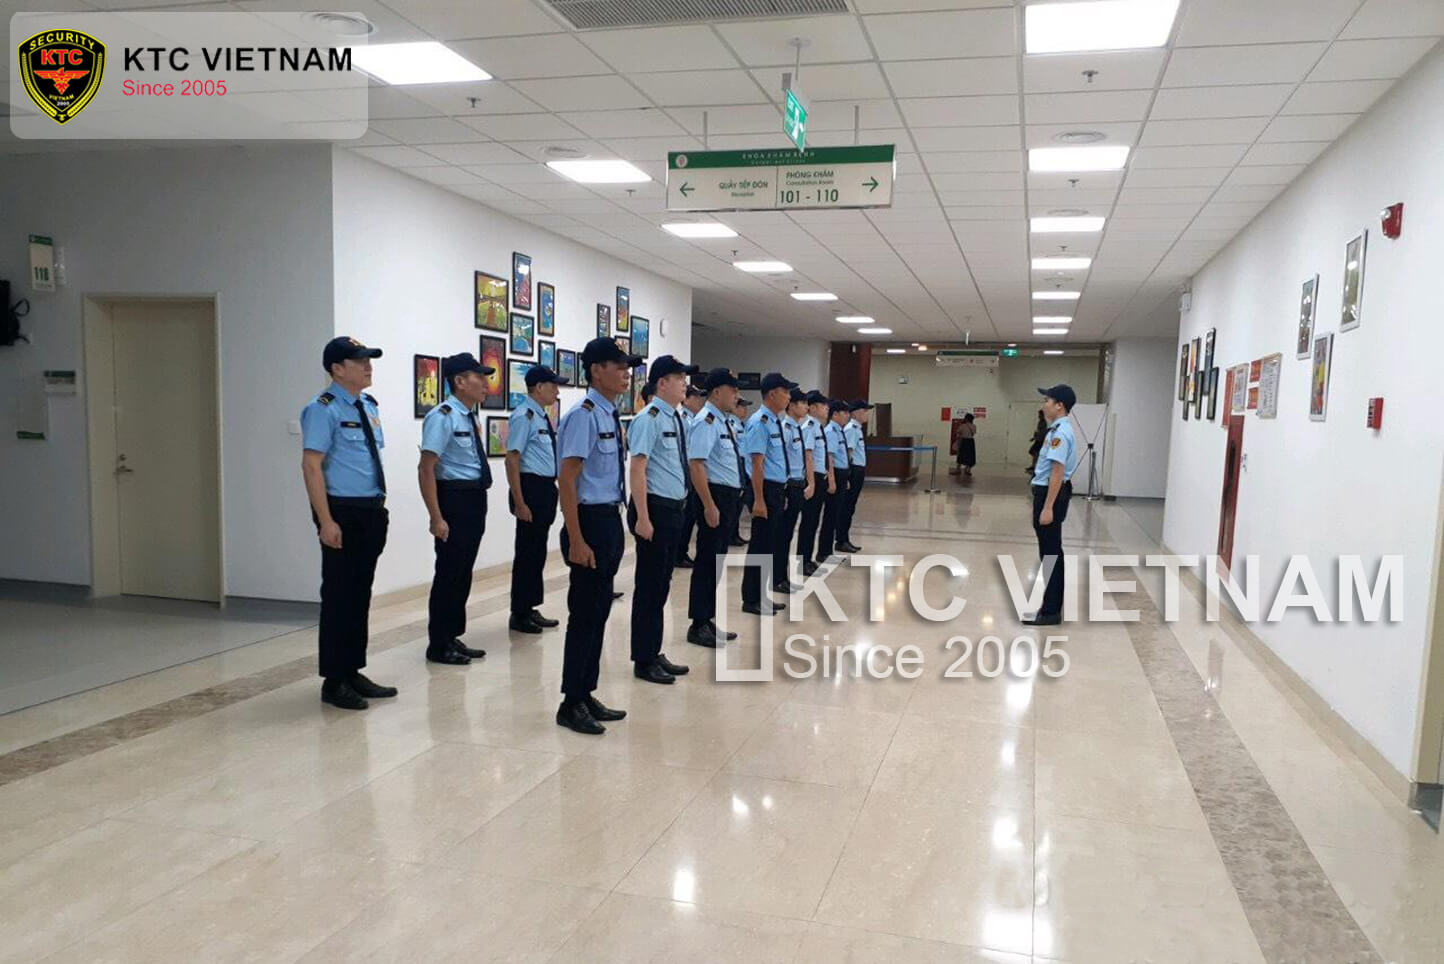 KTC deployed security service for the Military Central Hospital 108